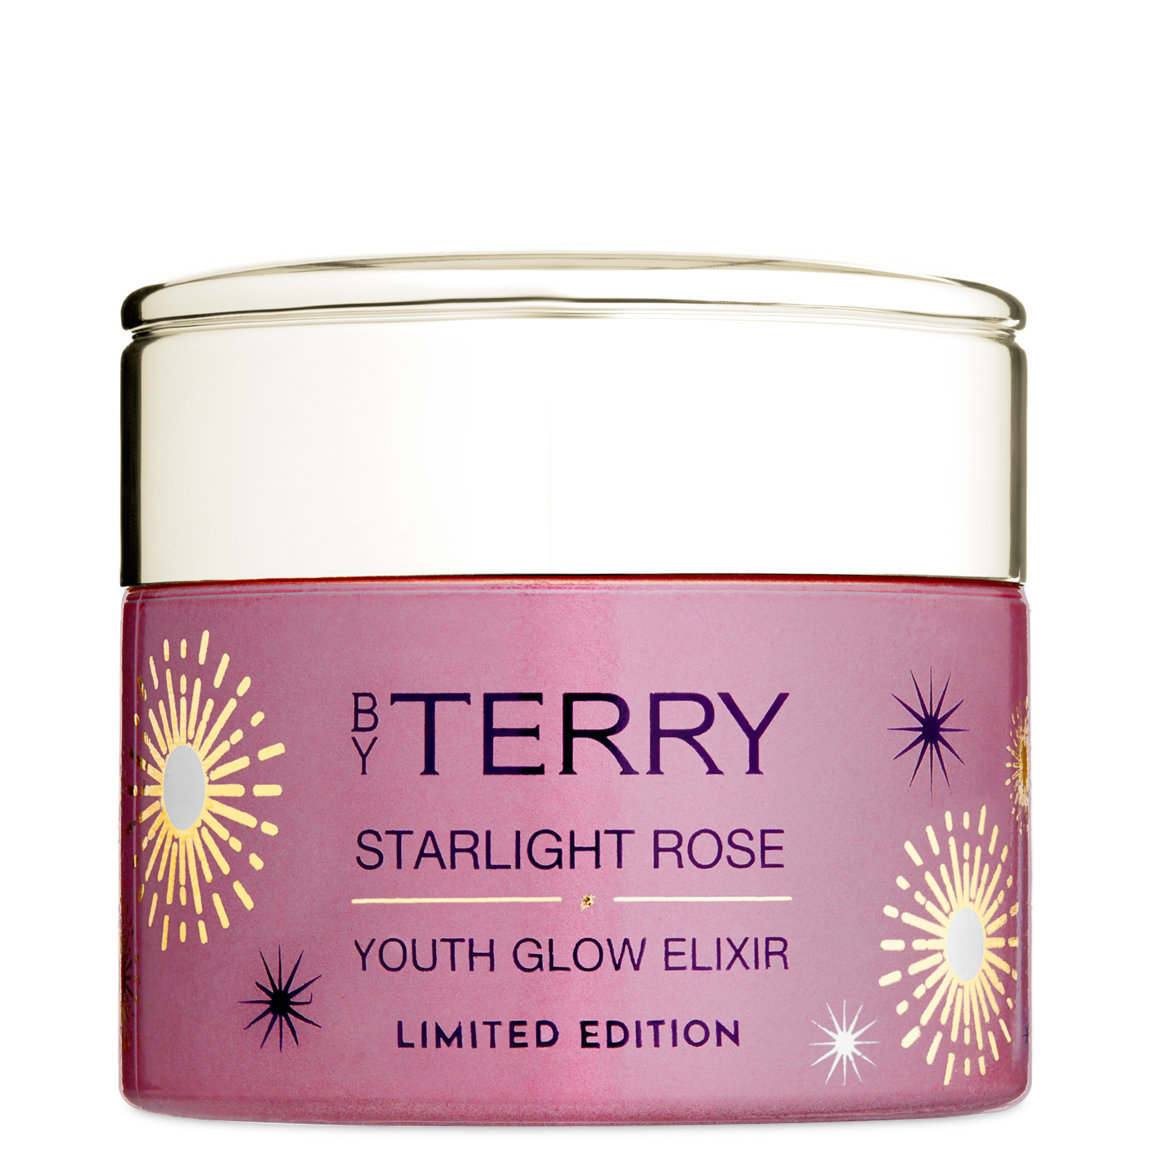 BY TERRY Starlight Rose Youth Glow Elixir alternative view 1 - product swatch.